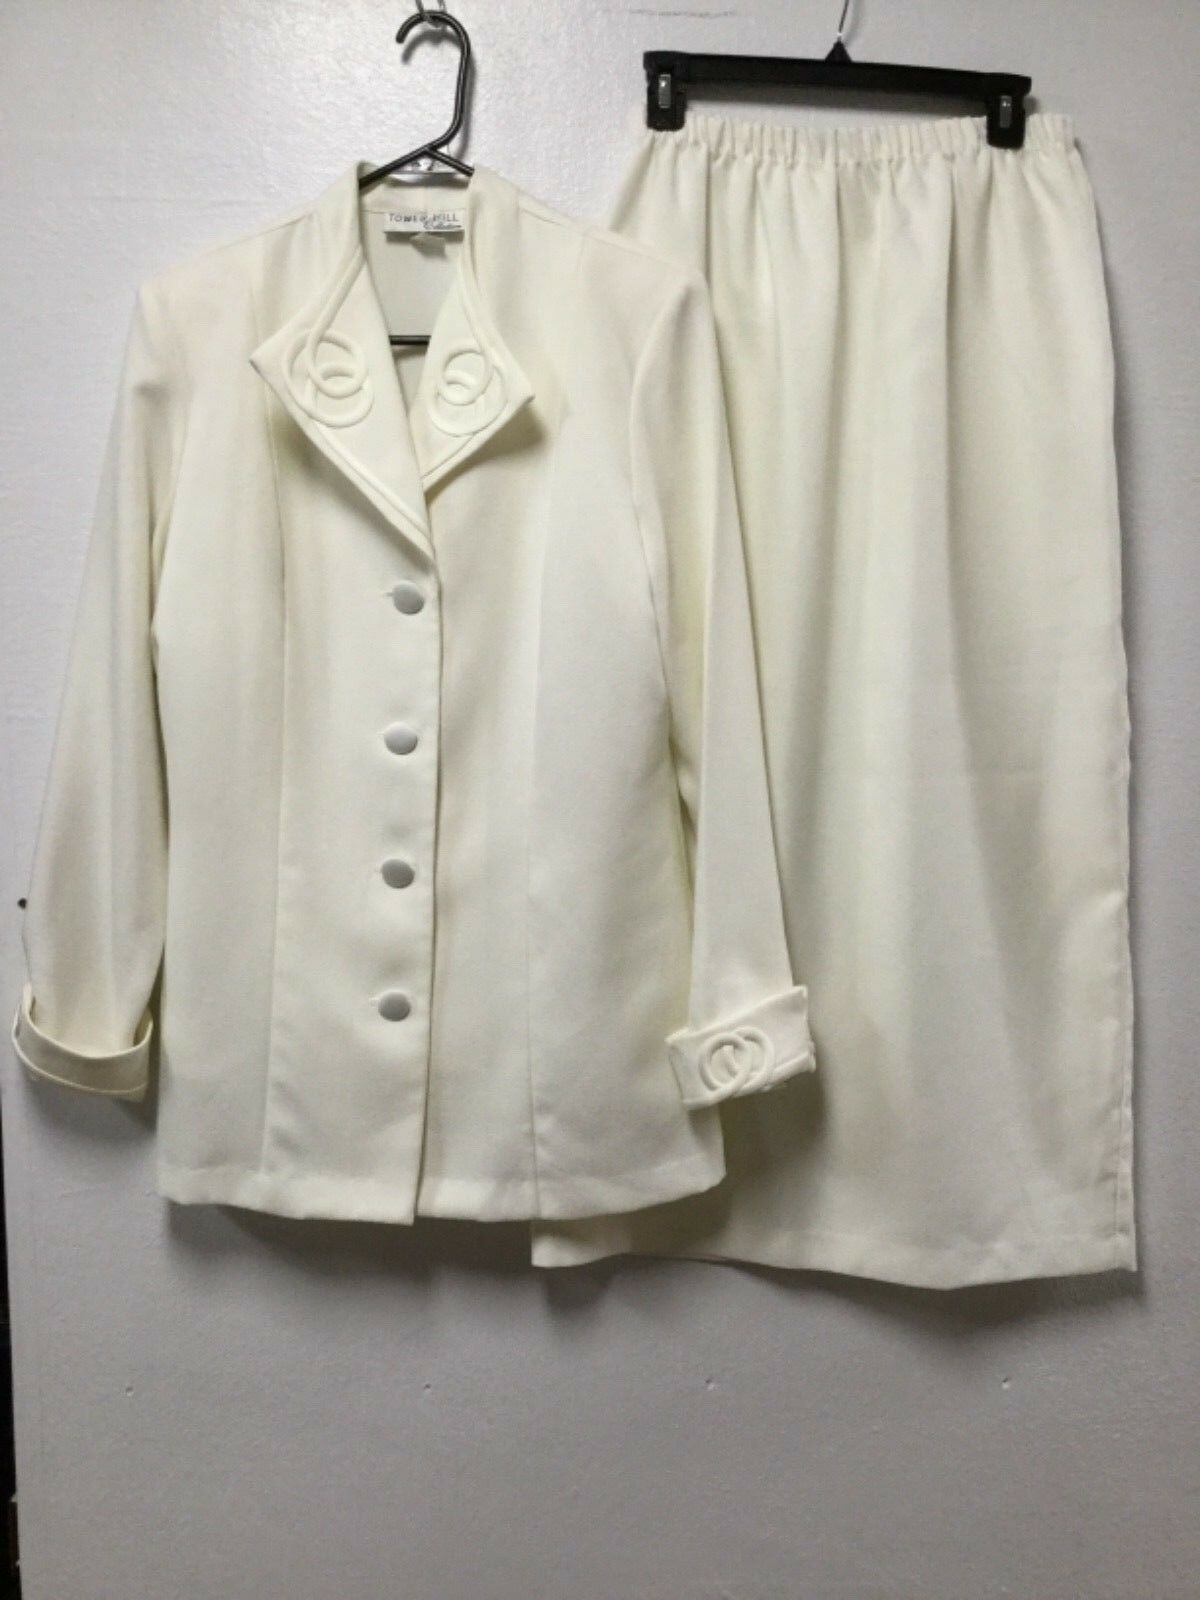 Womens Formal 3 Piece Skirt Suit Size 14 Ivory Mother of the Bride Tower Hill 55